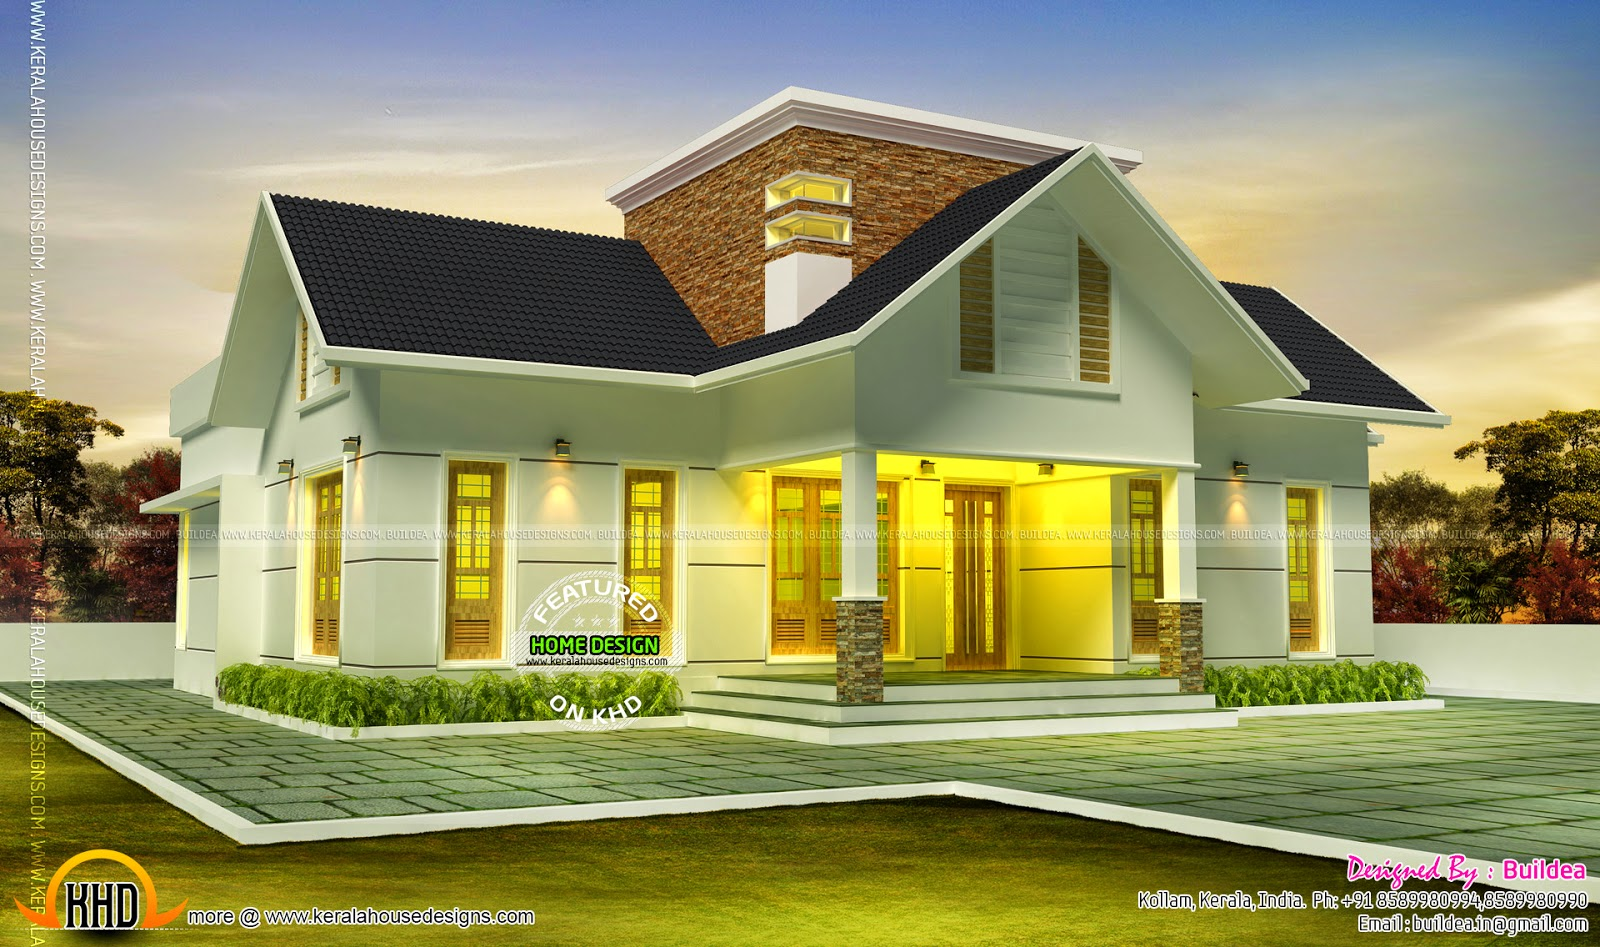 Very beautiful house kerala home design and floor plans for Beautiful house design plans